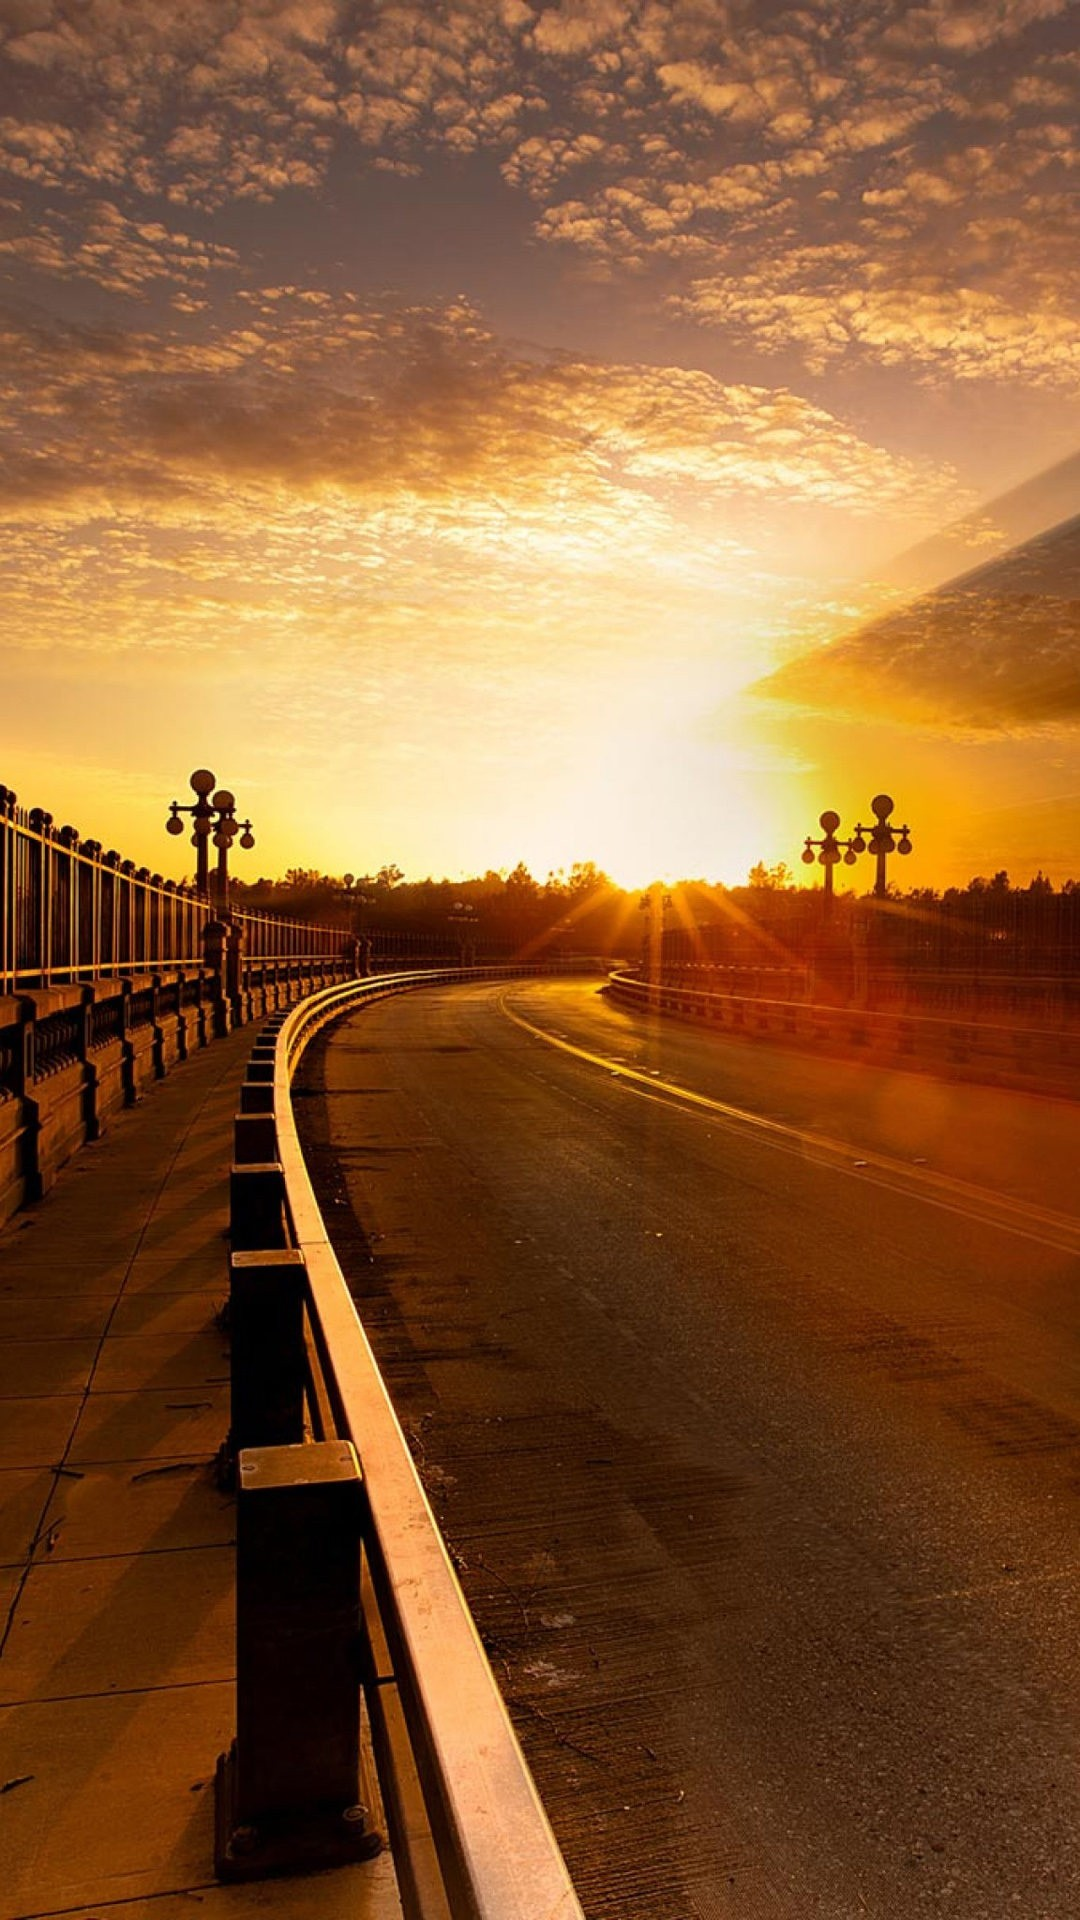 Road Sunset Wallpaper Road HD Wallpapers for...